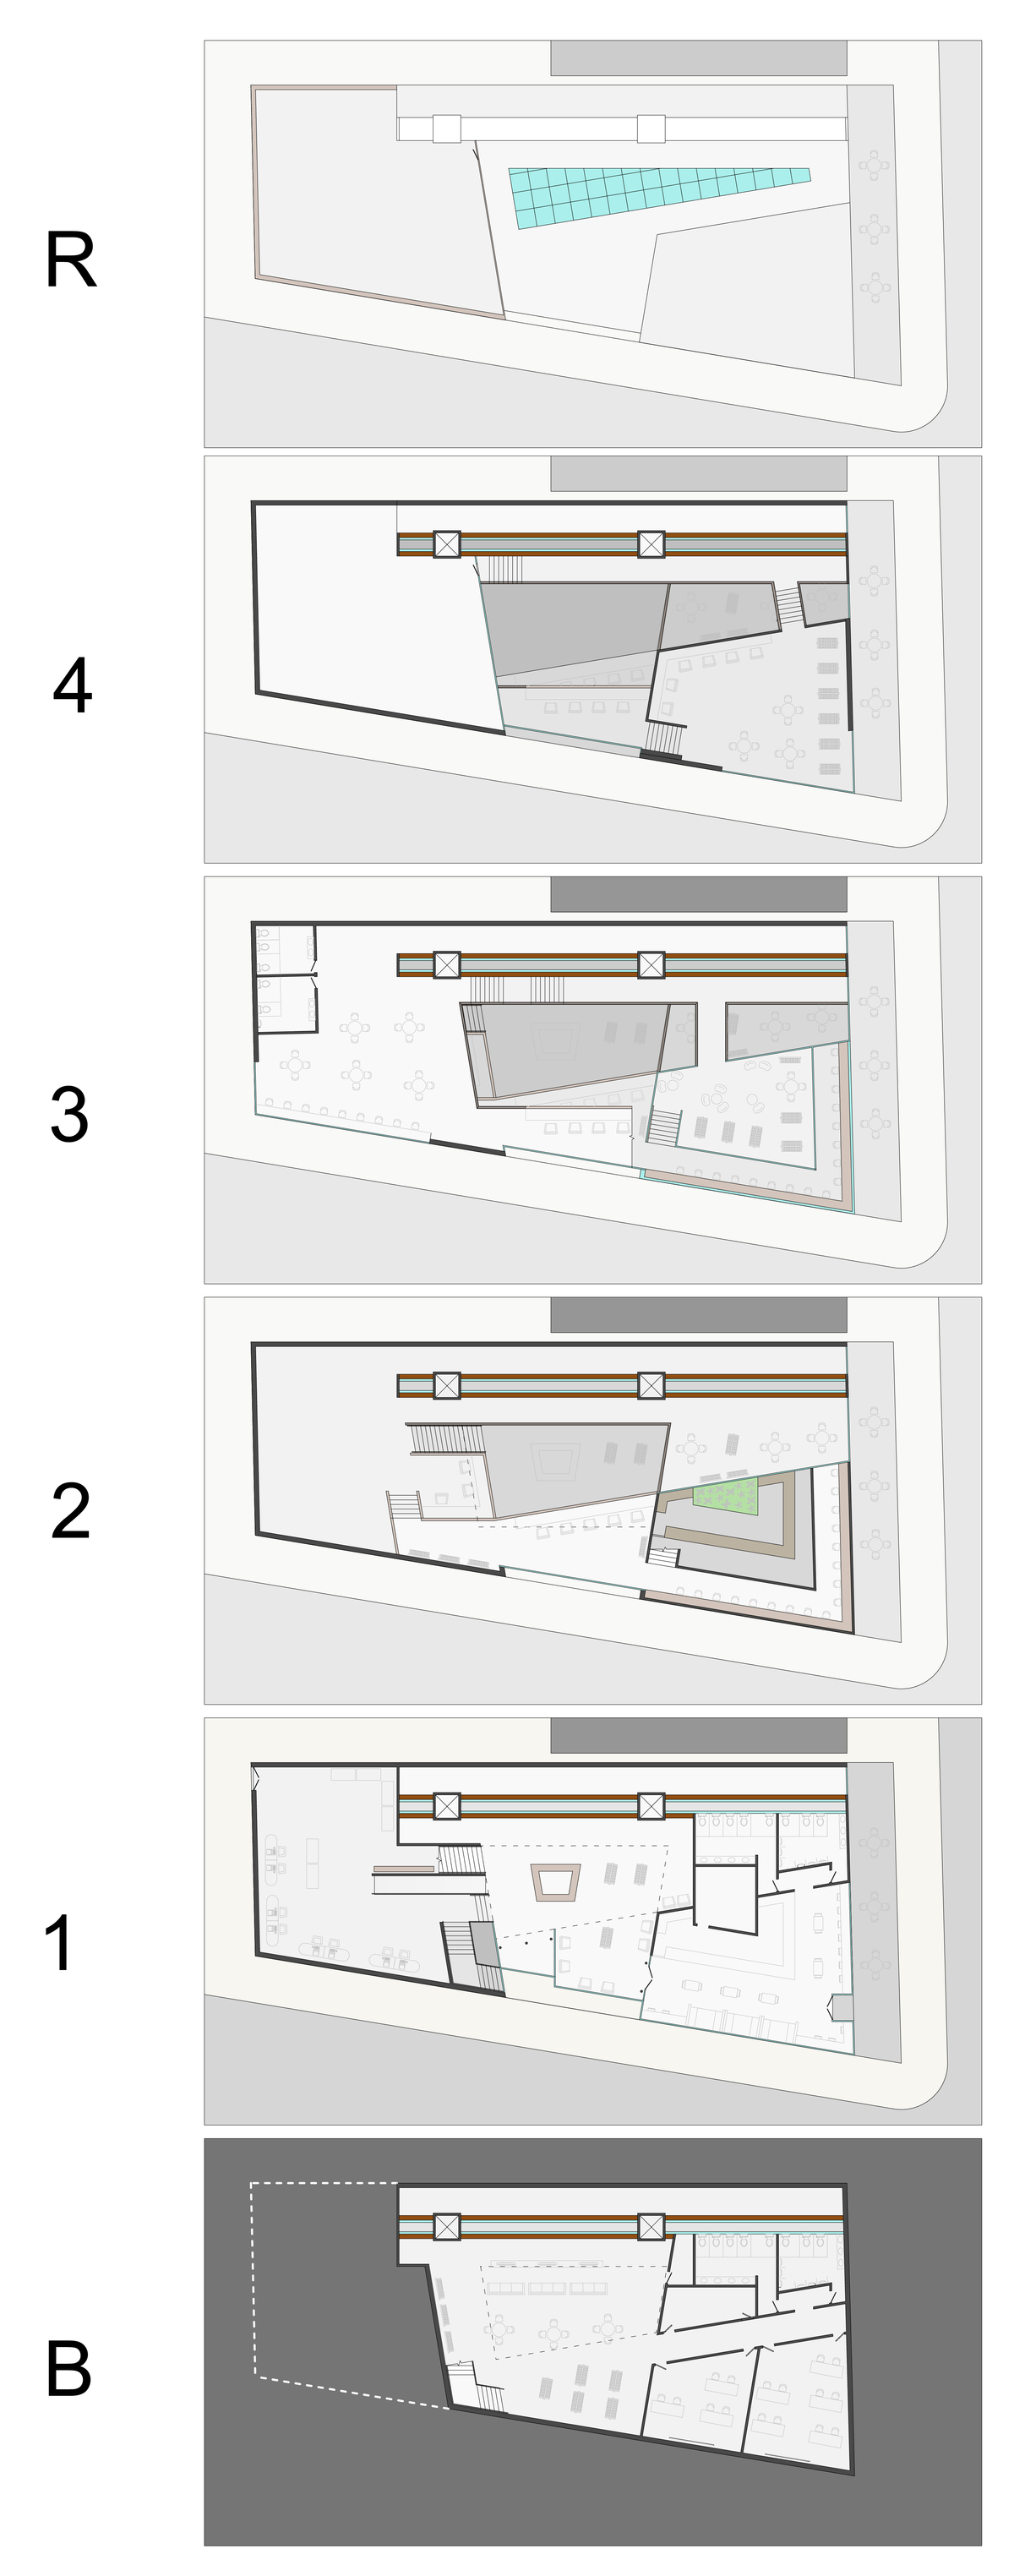 Floor plans of all six library levels.